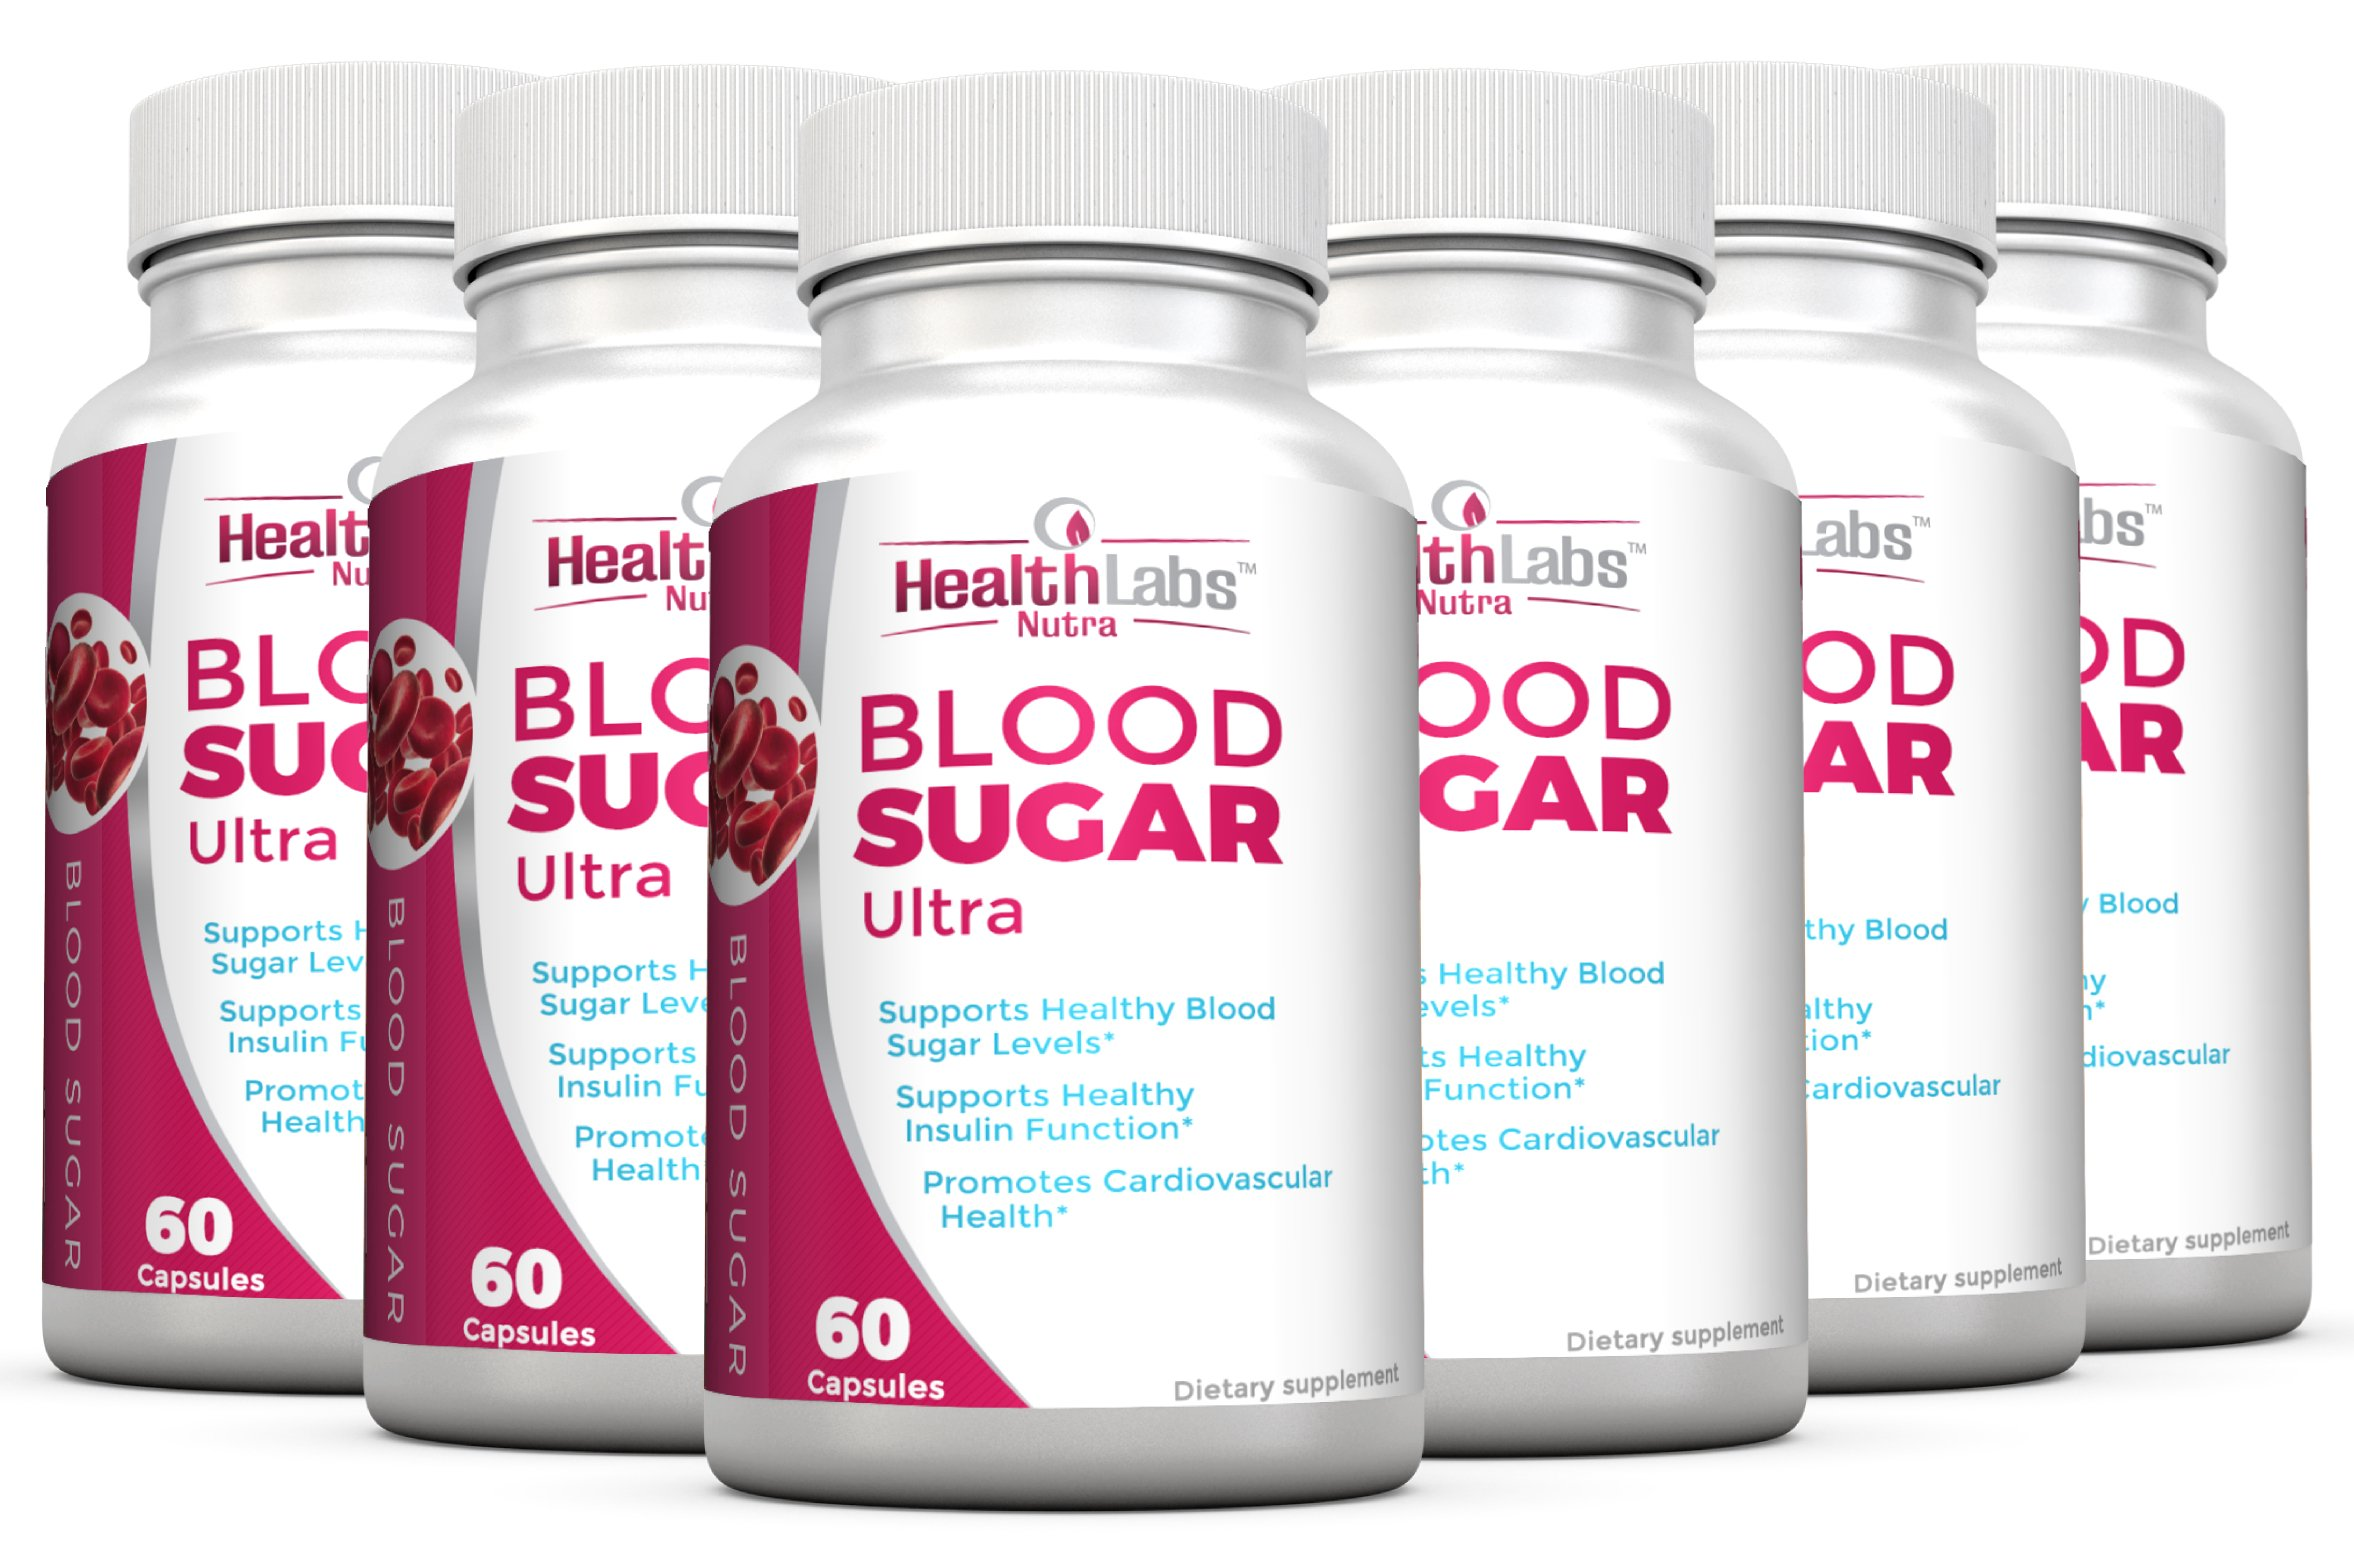 Health Labs Nutra Blood Sugar Ultra - Supports Healthy Blood Sugar Levels, Cardiovascular Health, Strengthens Immune System - Pack of 6